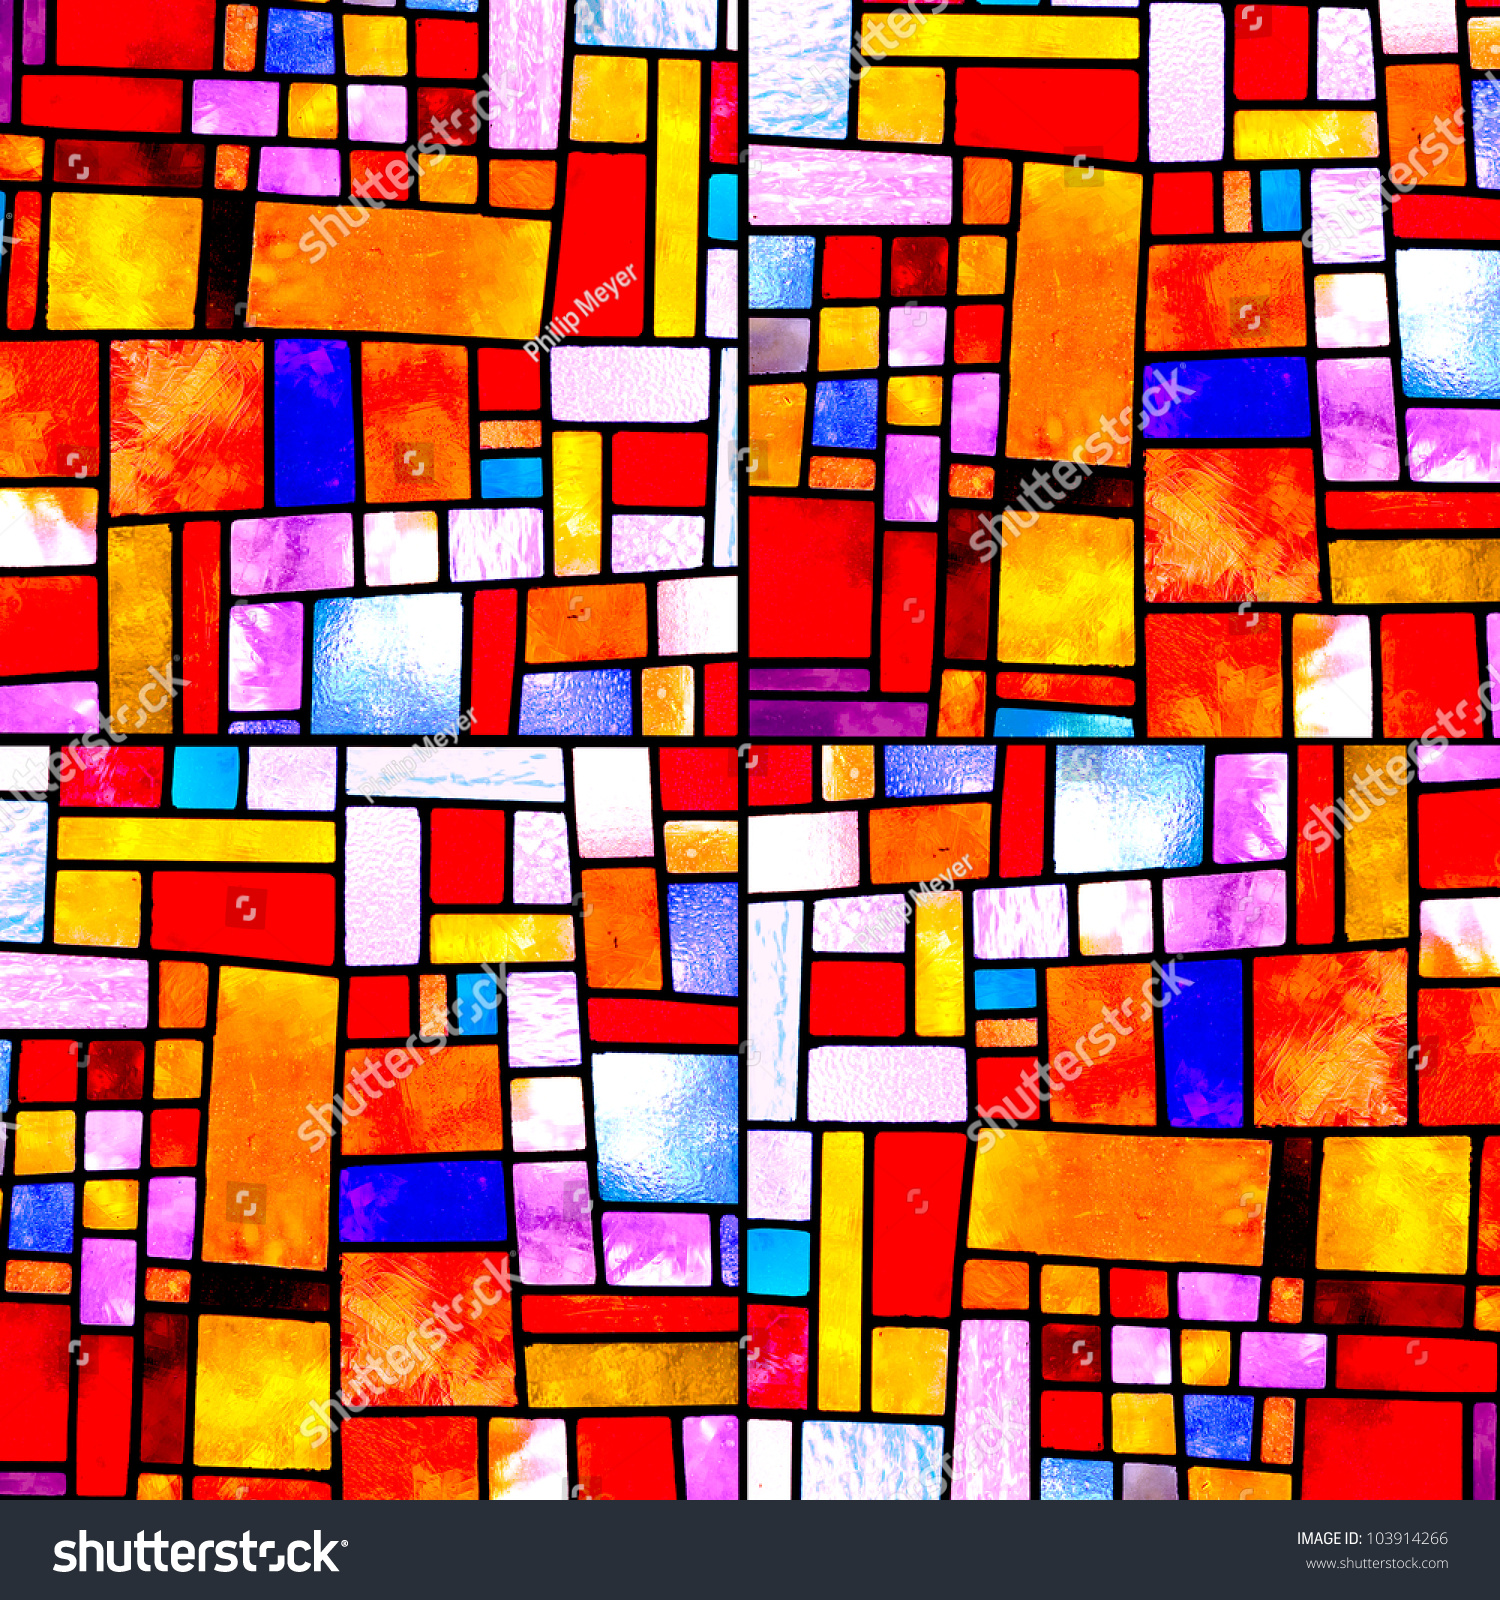 Stained Glass Window Patterns : Image multicolored stained glass window irregular stock